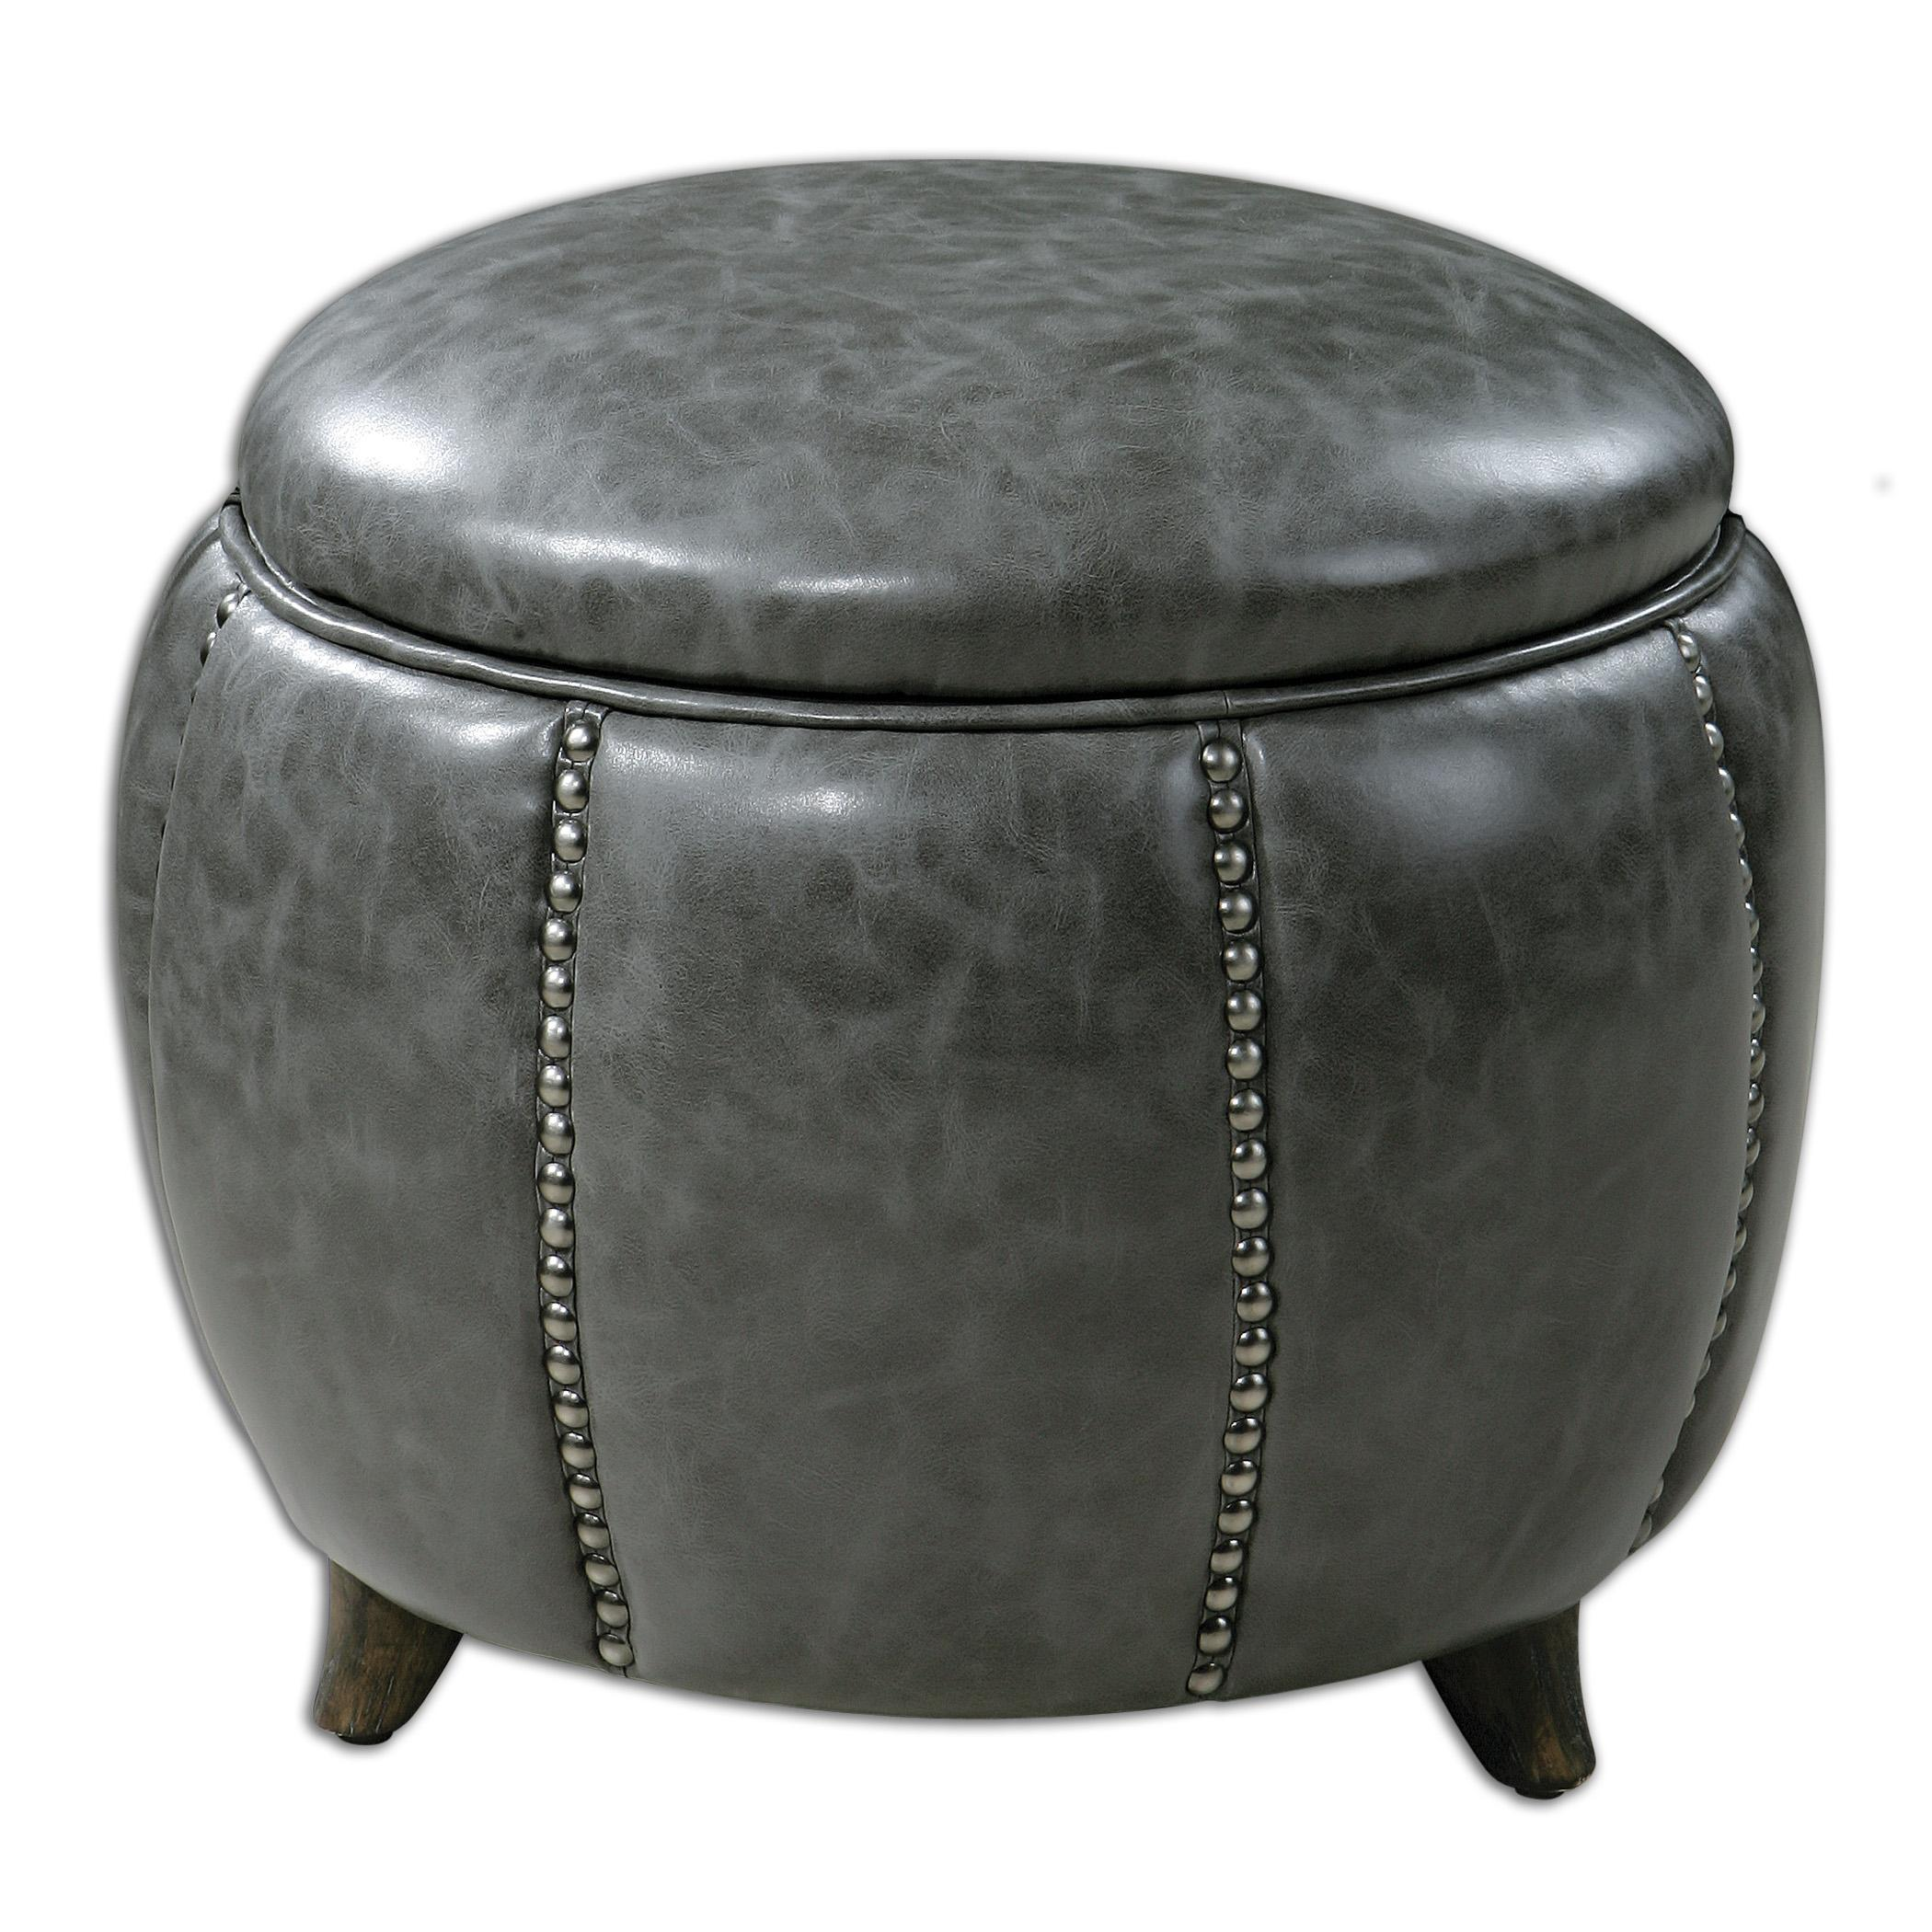 Uttermost Accent Furniture Linford Round Storage Ottoman - Item Number: 23187